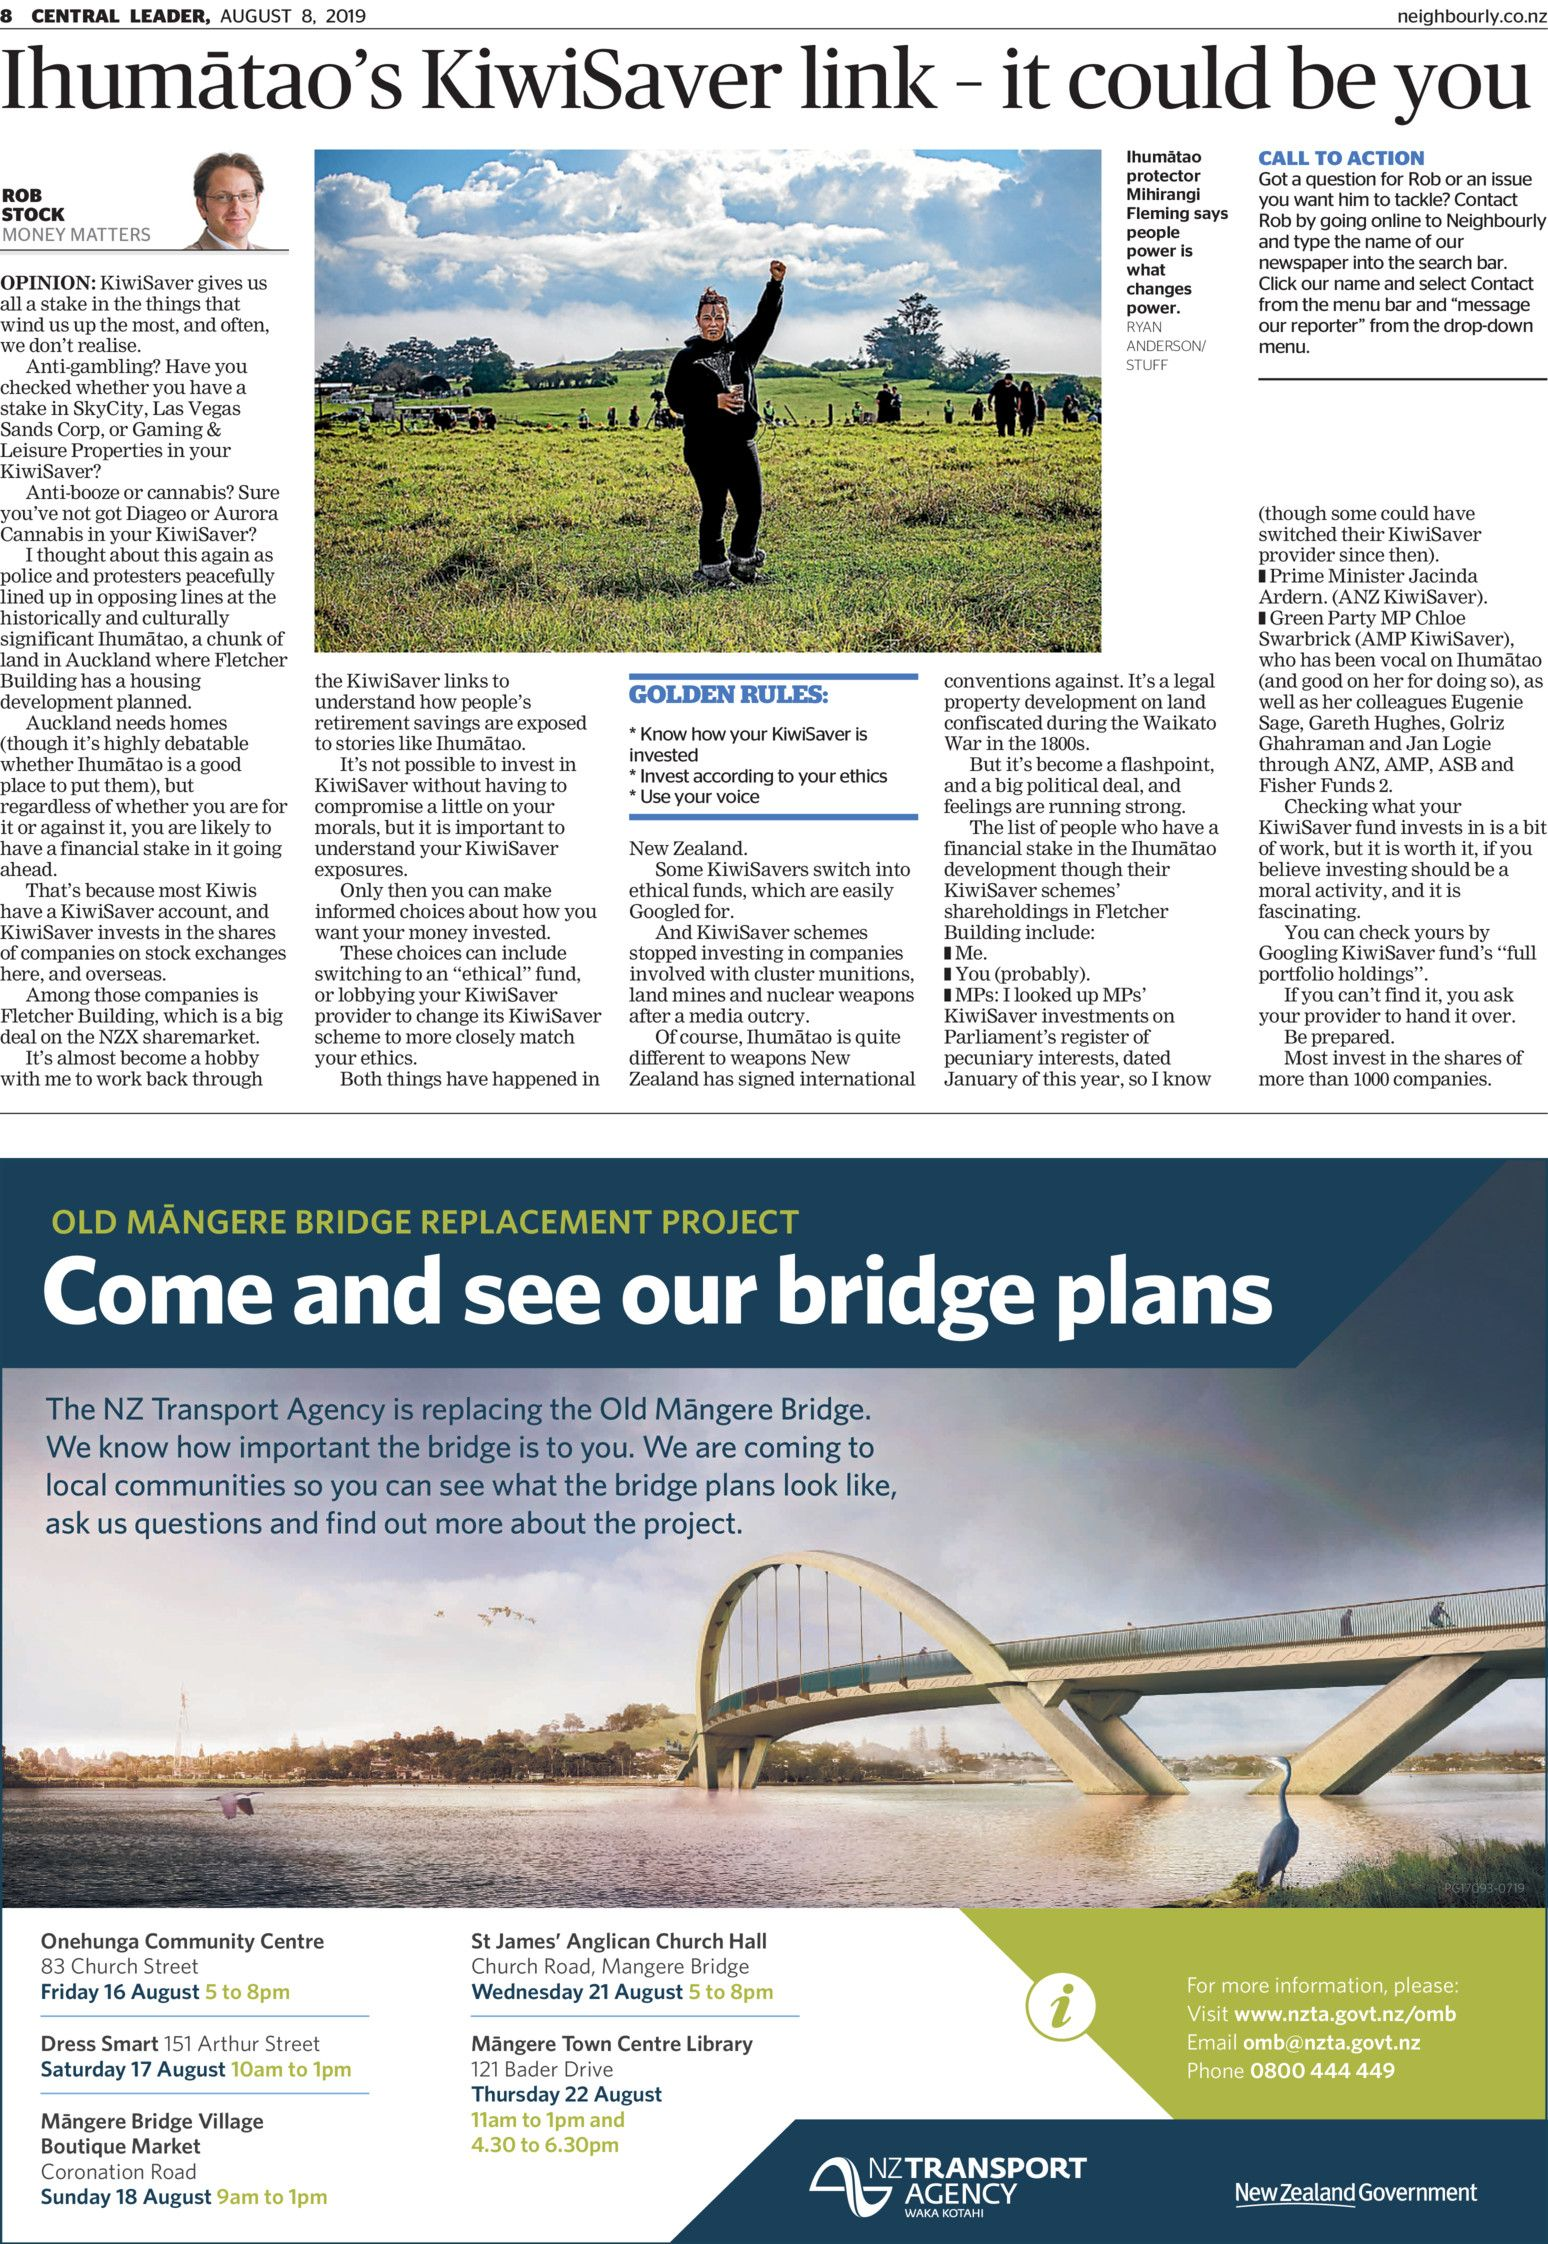 Central Leader - Read online on Neighbourly